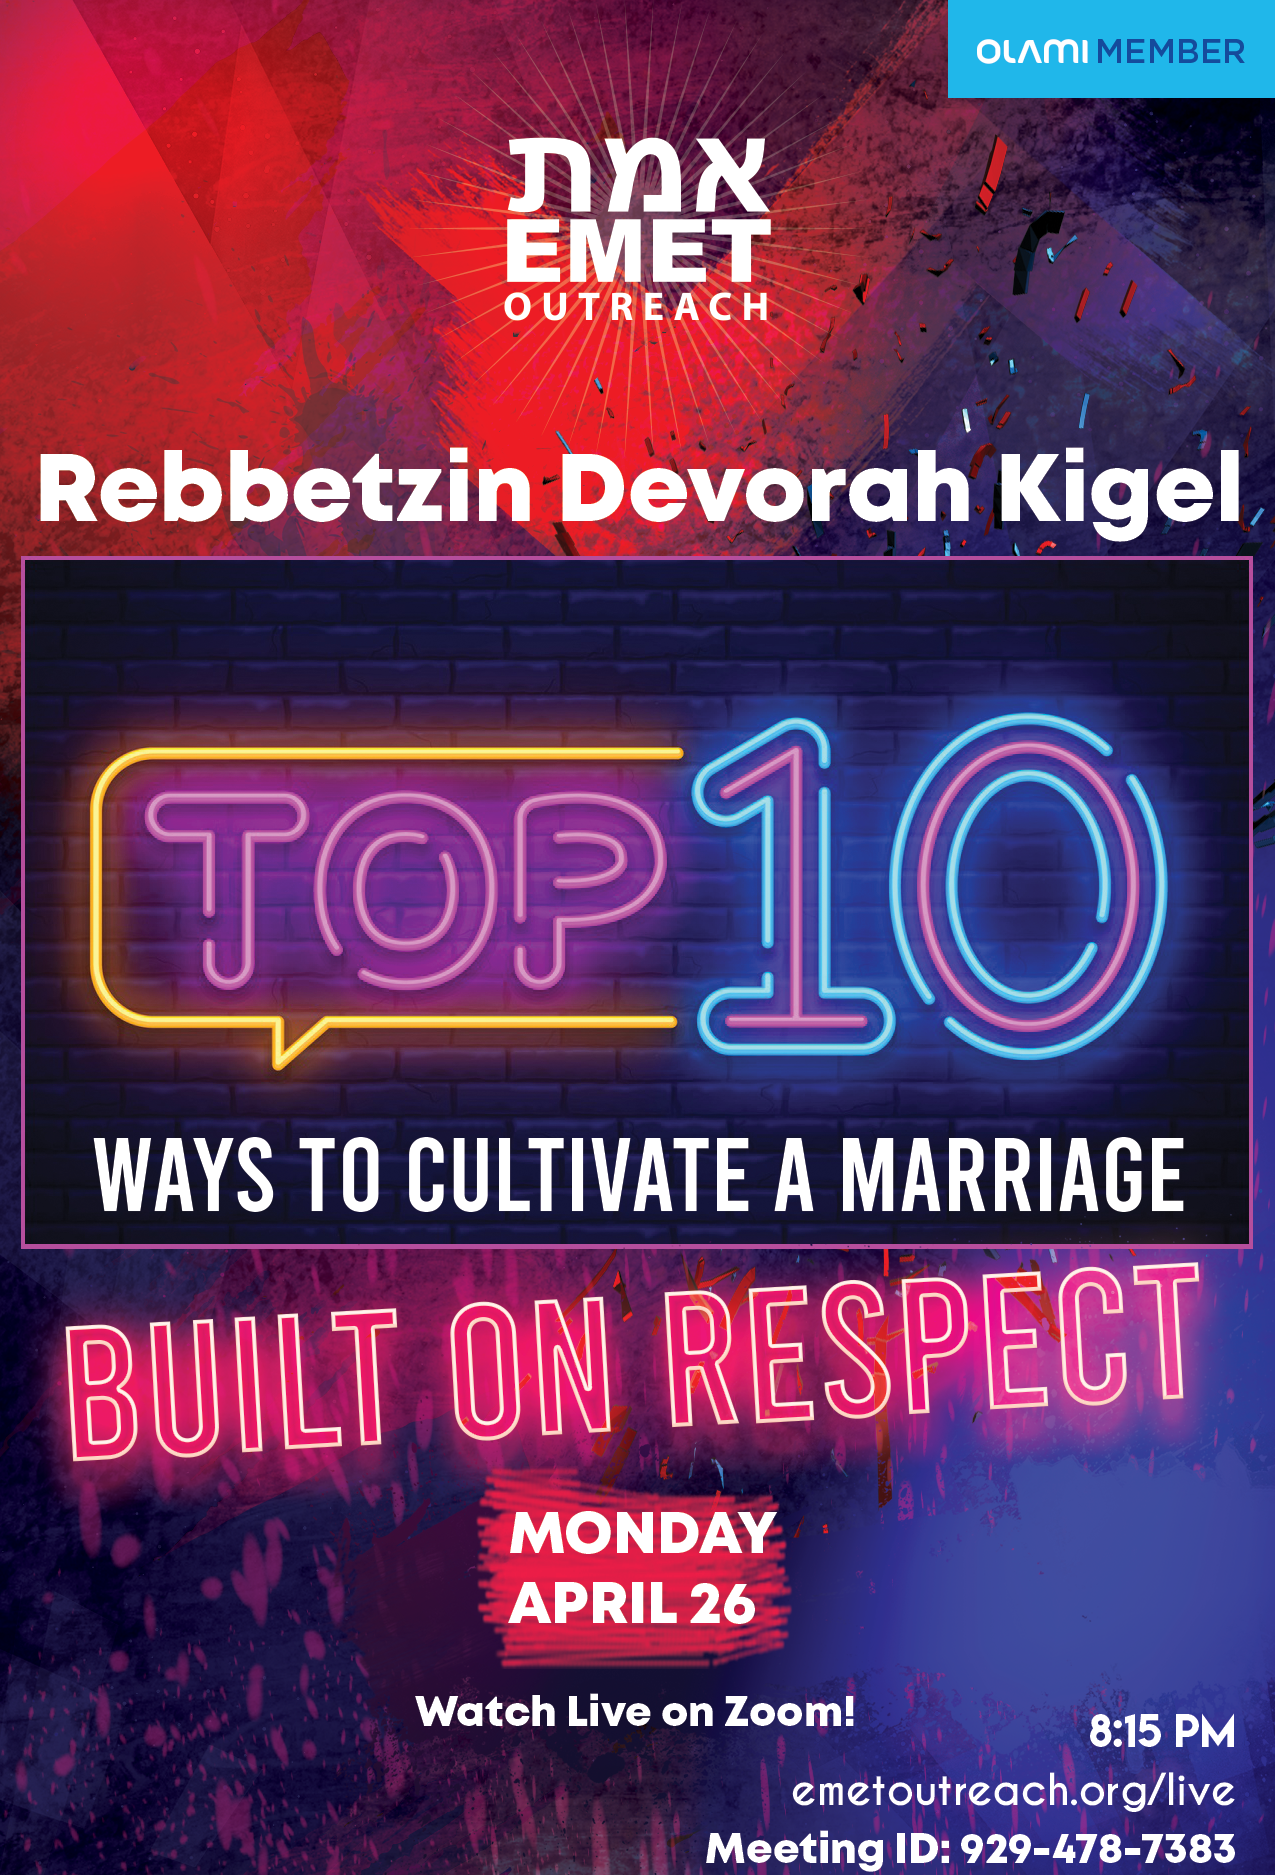 Reb Kigel Top 10 Ways To Cultivate Marrage Built on Respect 2021